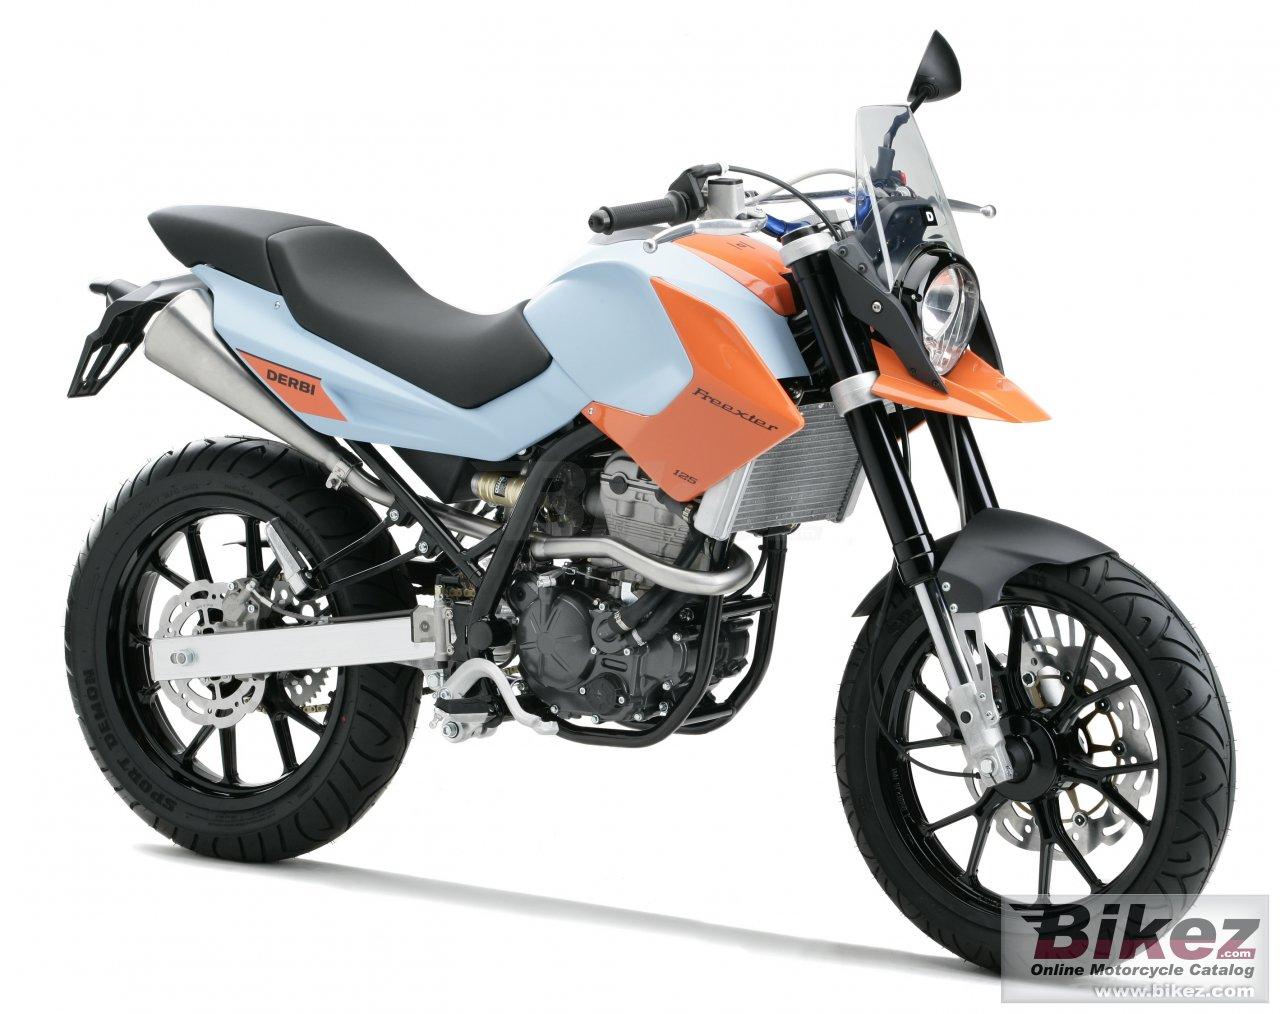 Big Derbi mulhacen 125st freexter picture and wallpaper from Bikez.com